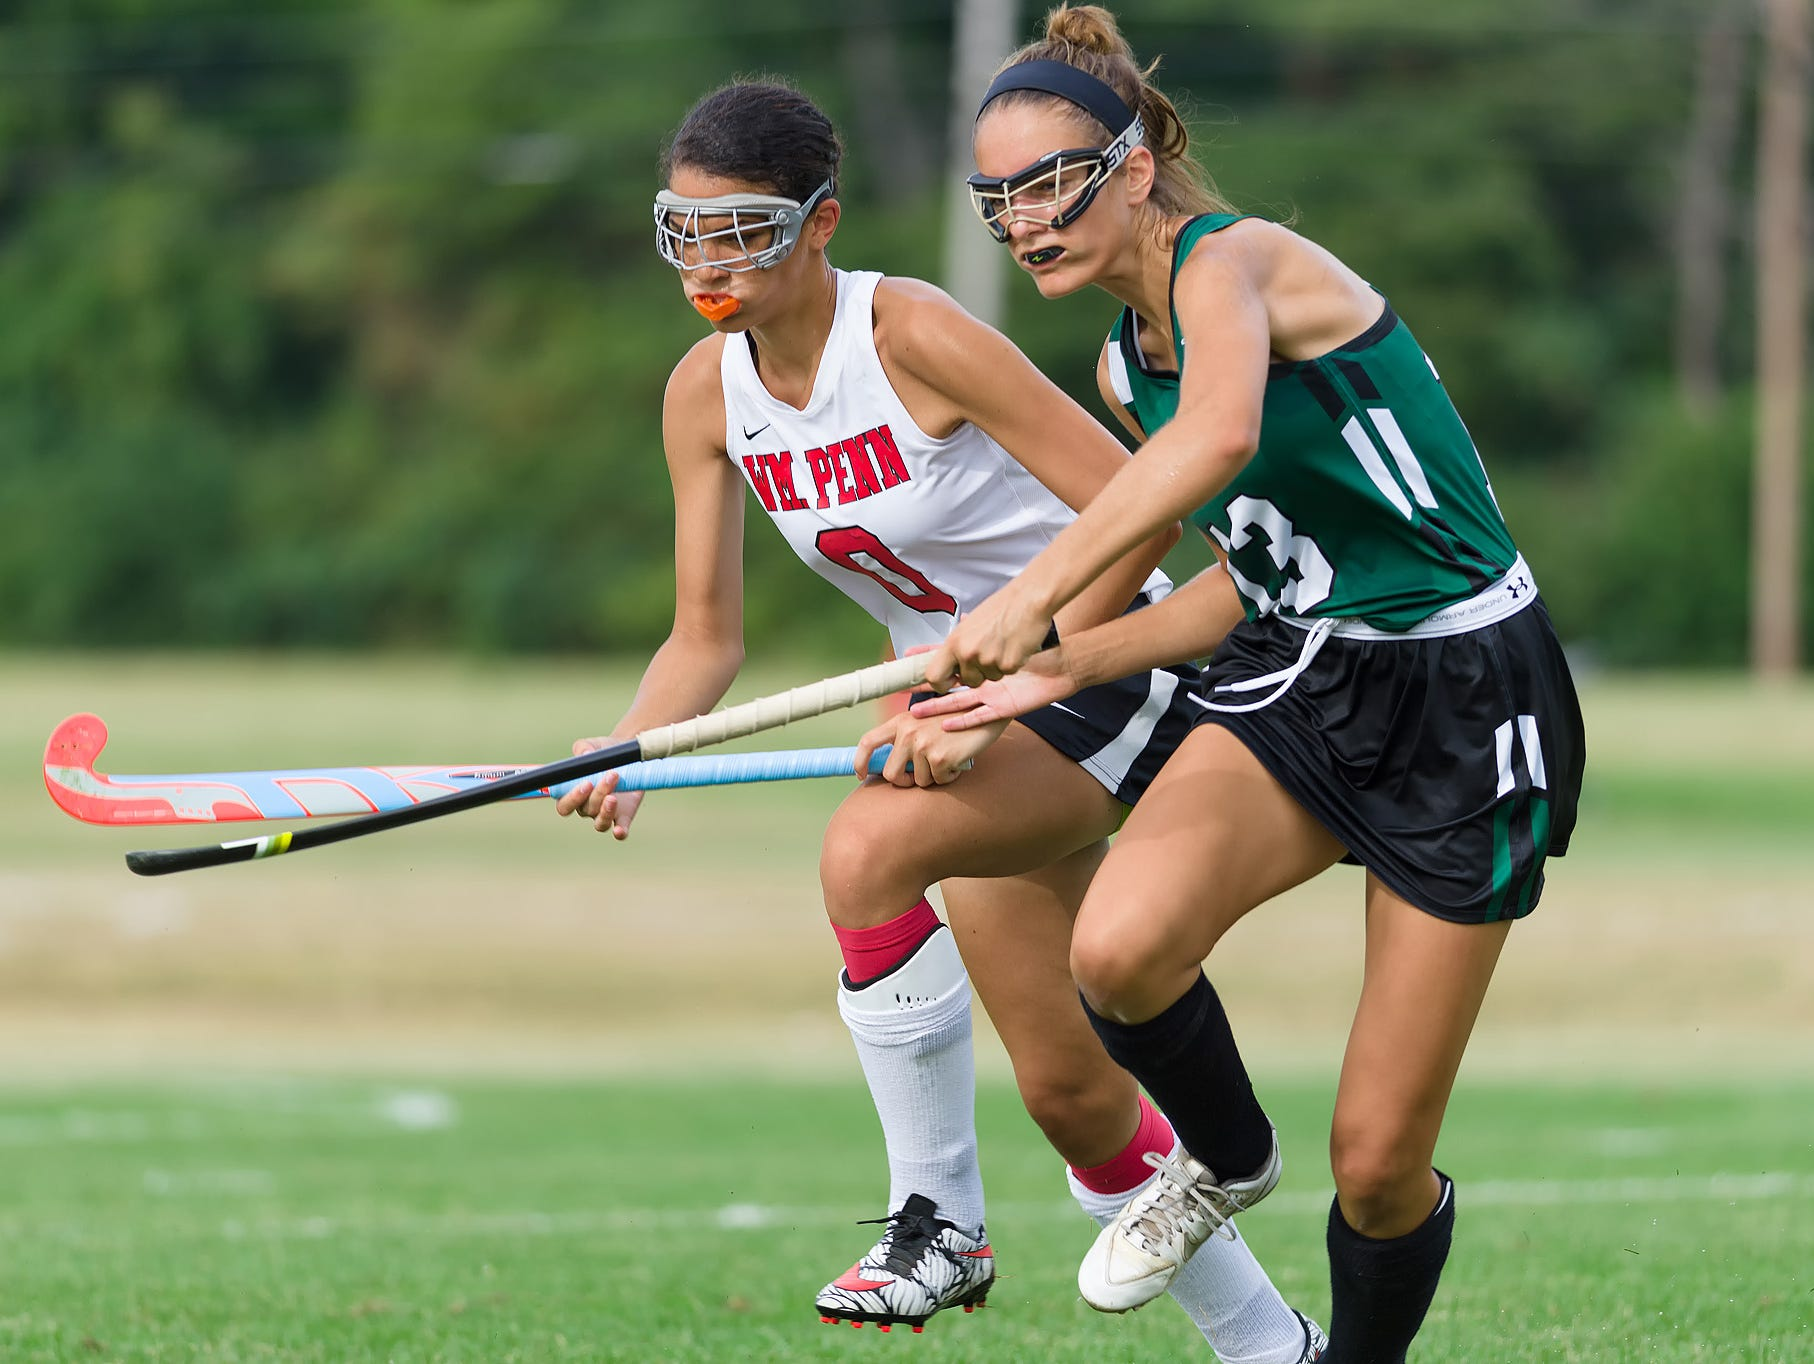 Elizabeth Soucy (13) of Mt. Pleasant and Makayla Robinson (0) of William Penn race for the ball in the William Penn vs Mt. Pleasant field hockey game at William Penn on Tuesday.